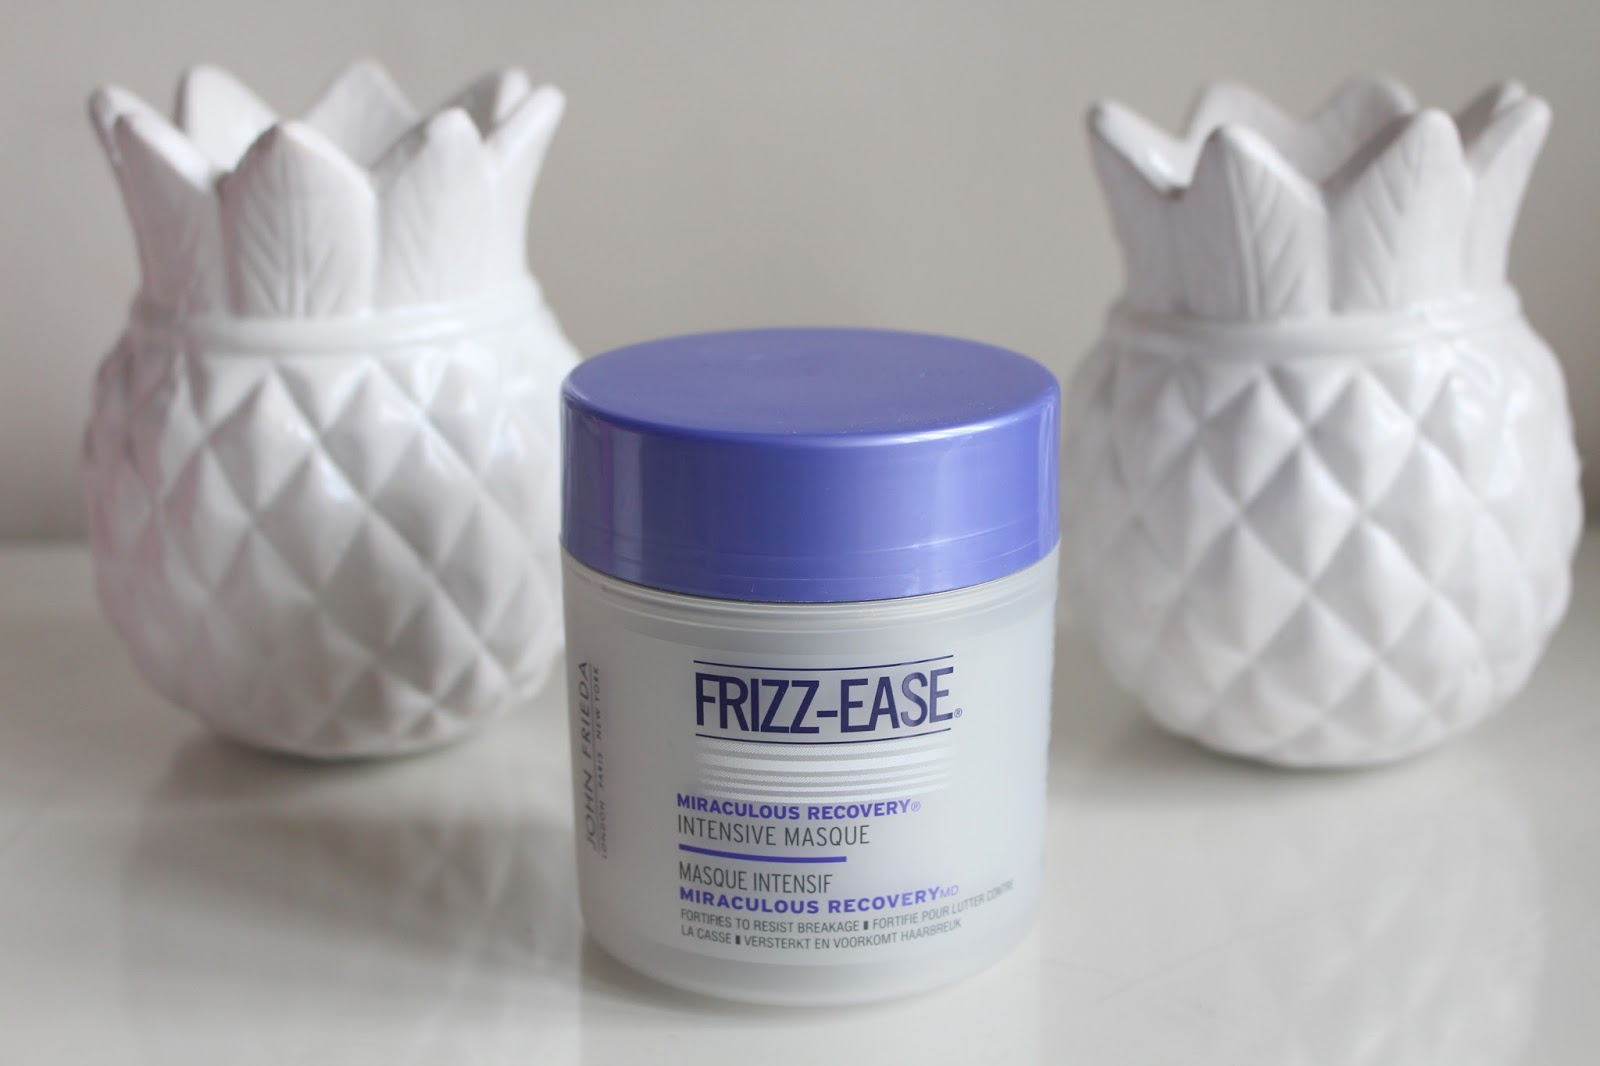 John Frieda Frizz-Ease Miraculous Recovery Intensive Masque